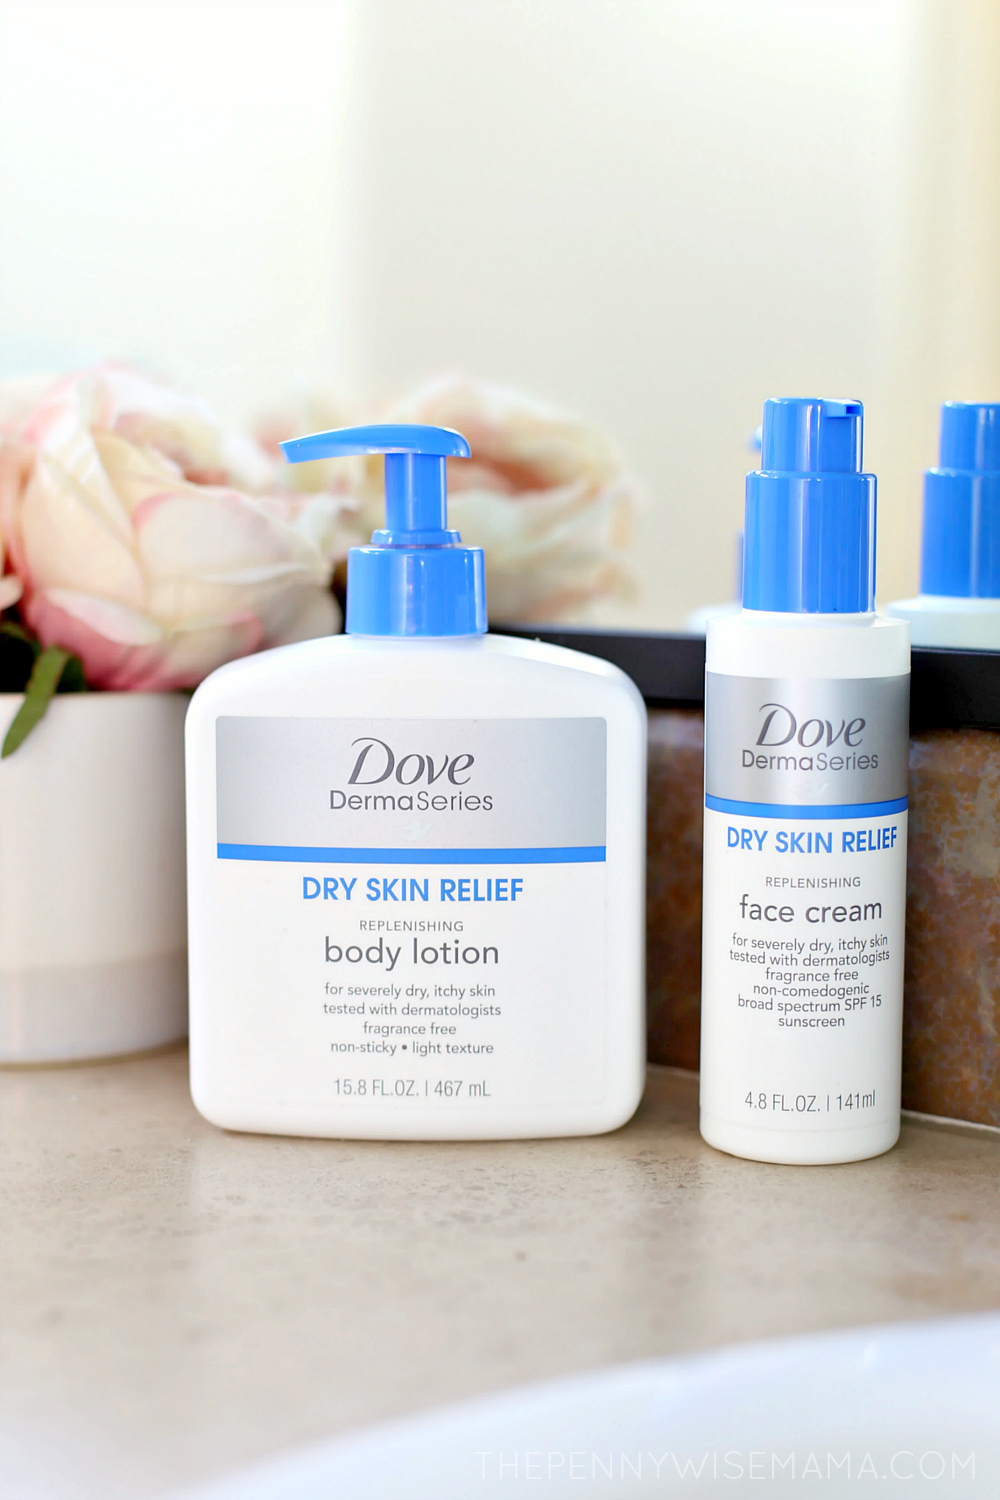 Dove DermaSeries products for dry, itchy skin